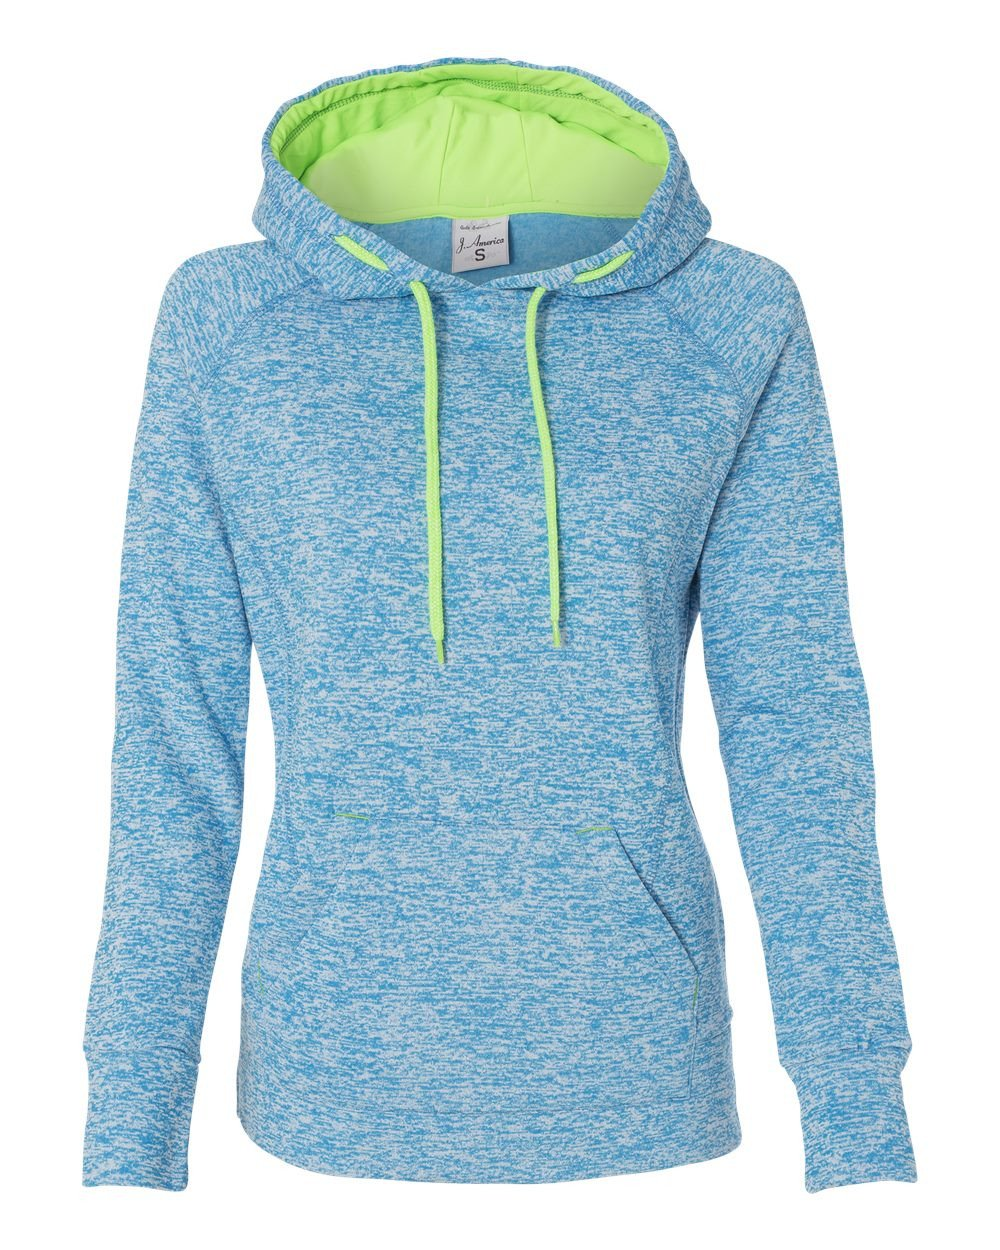 Ladies Pullover Hooded Sweatshirt, Blue/Green, Medium by J. America